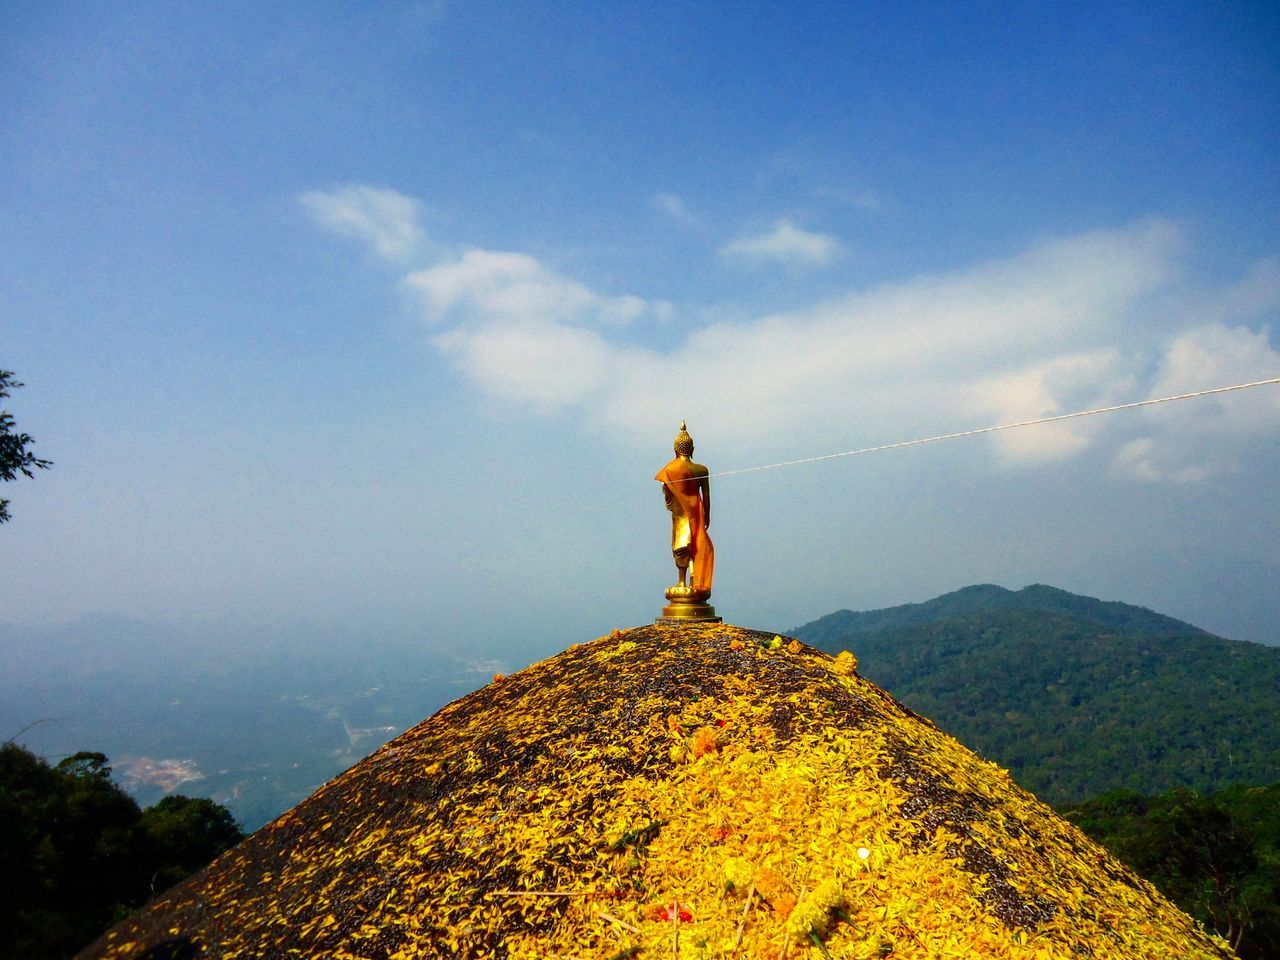 mountain, nature, sky, beauty in nature, spirituality, religion, tranquil scene, arms outstretched, outdoors, cross, tranquility, standing, day, low angle view, cloud - sky, scenics, hiking, real people, one person, adventure, people